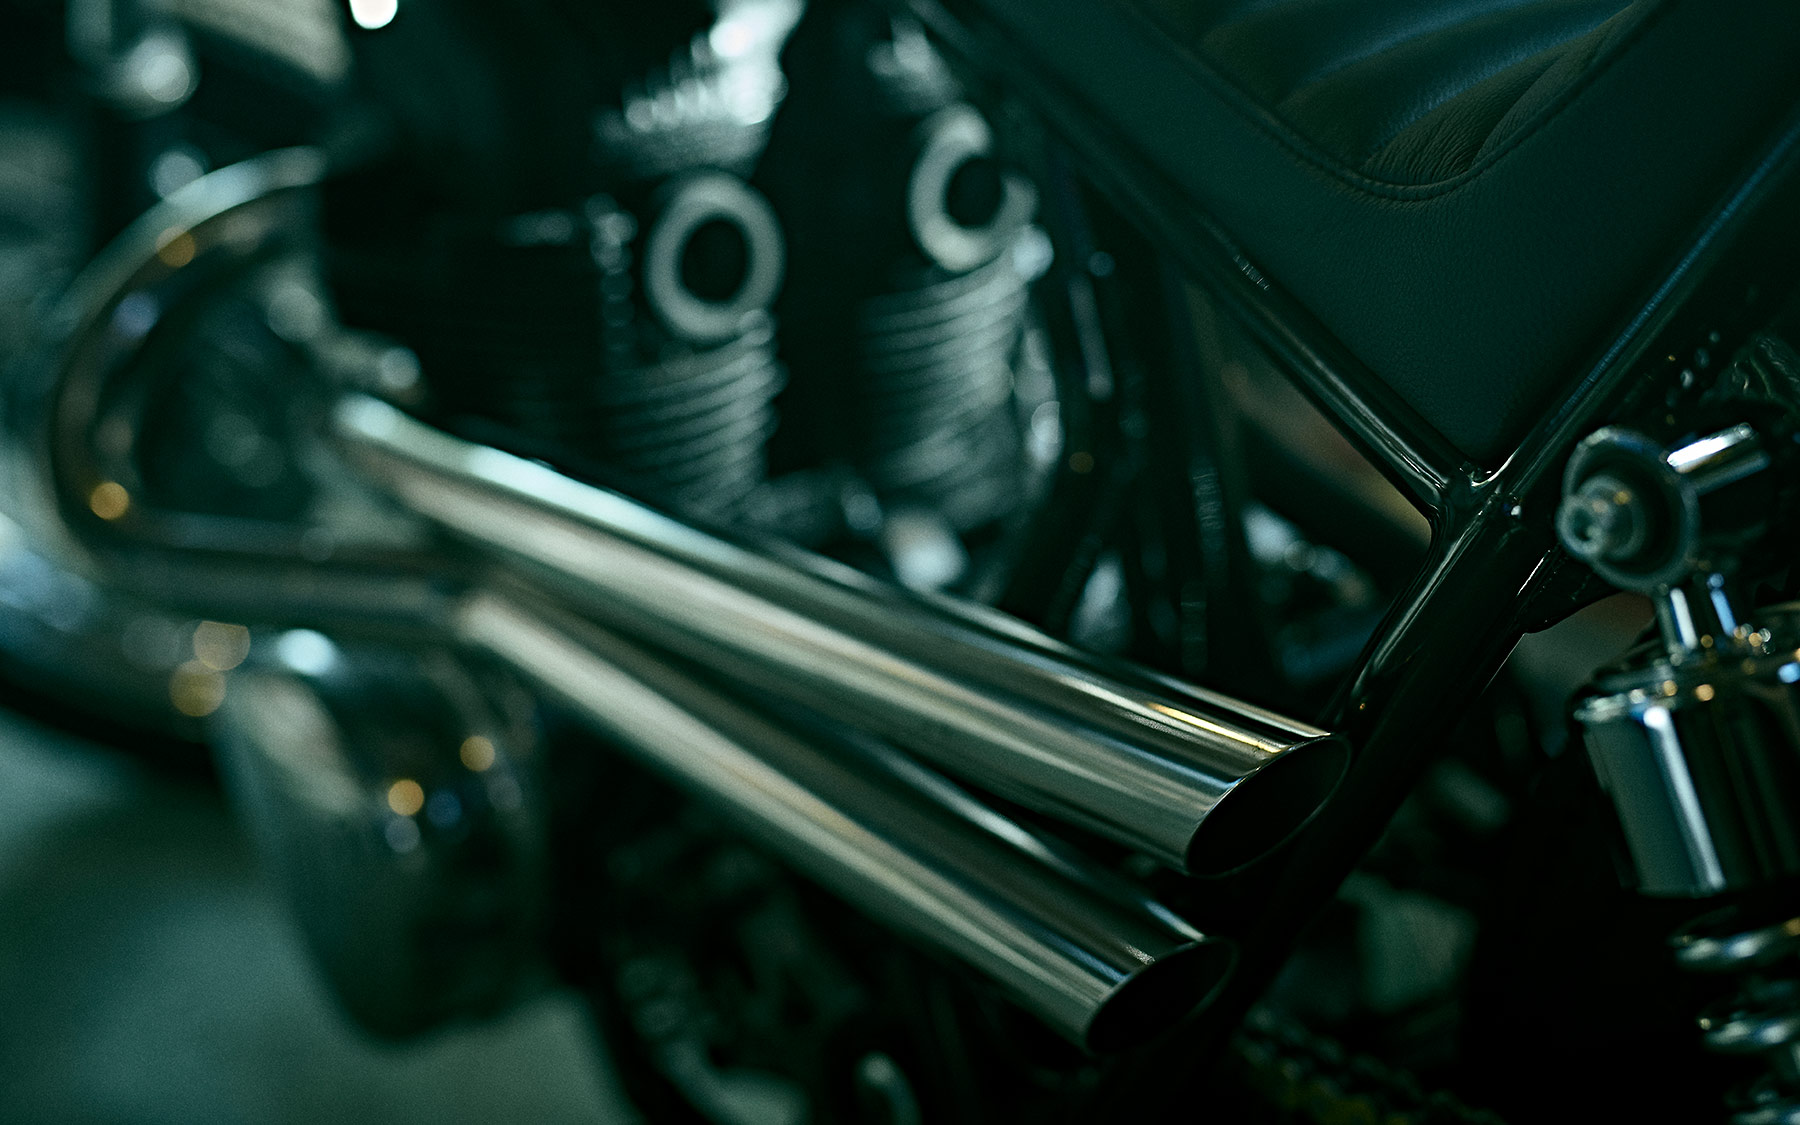 Close up of a custom exhaust for a motorbike